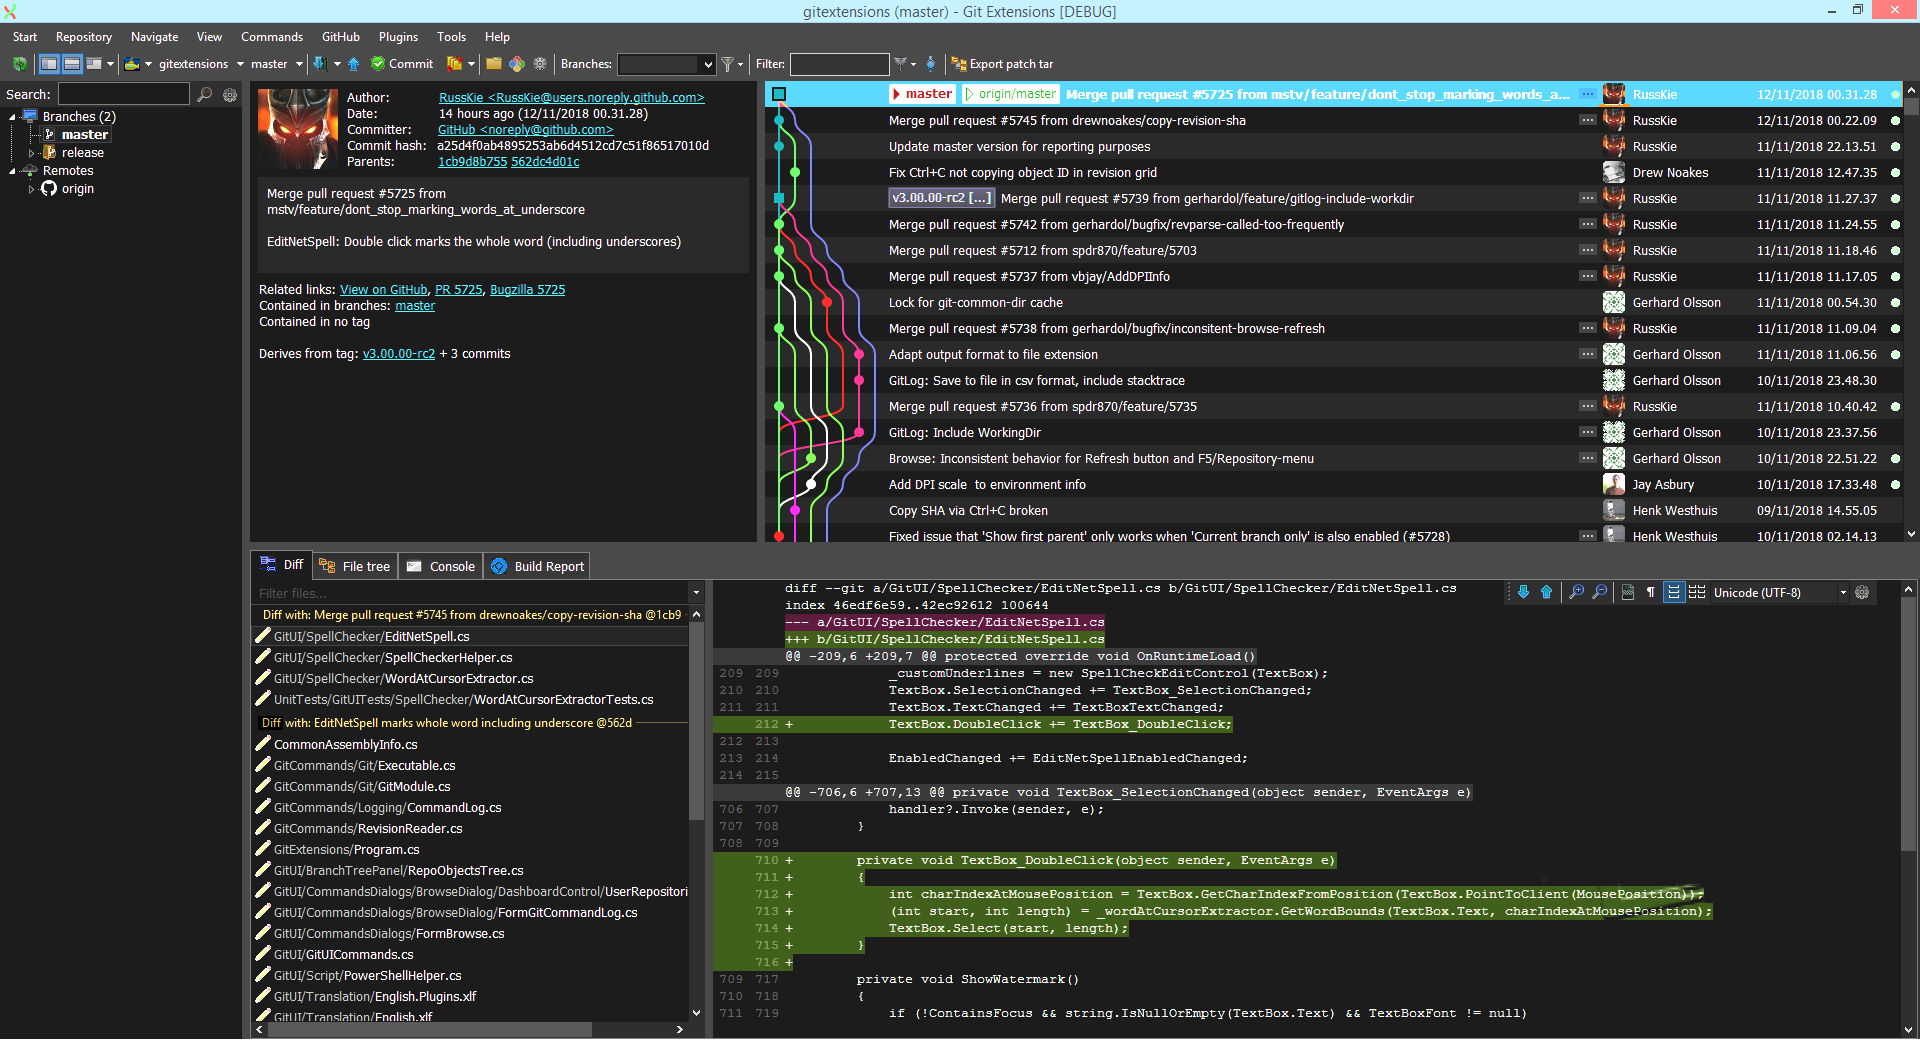 Feature: DARK THEME · Issue #5489 · gitextensions/gitextensions · GitHub